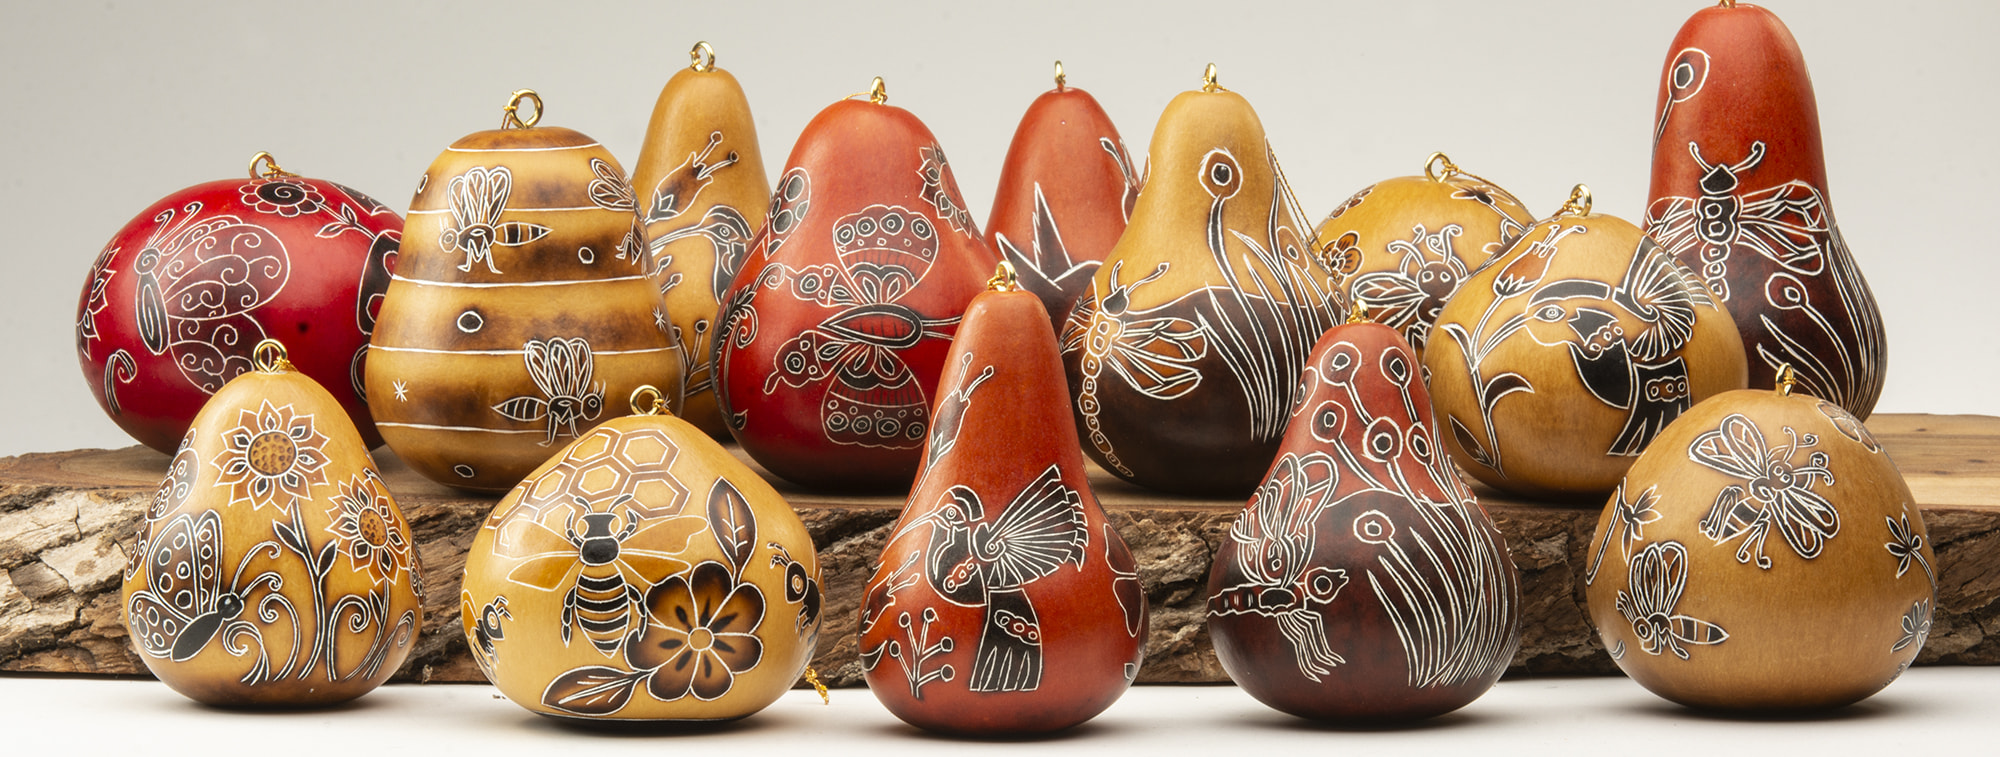 gourd ornaments nature mix